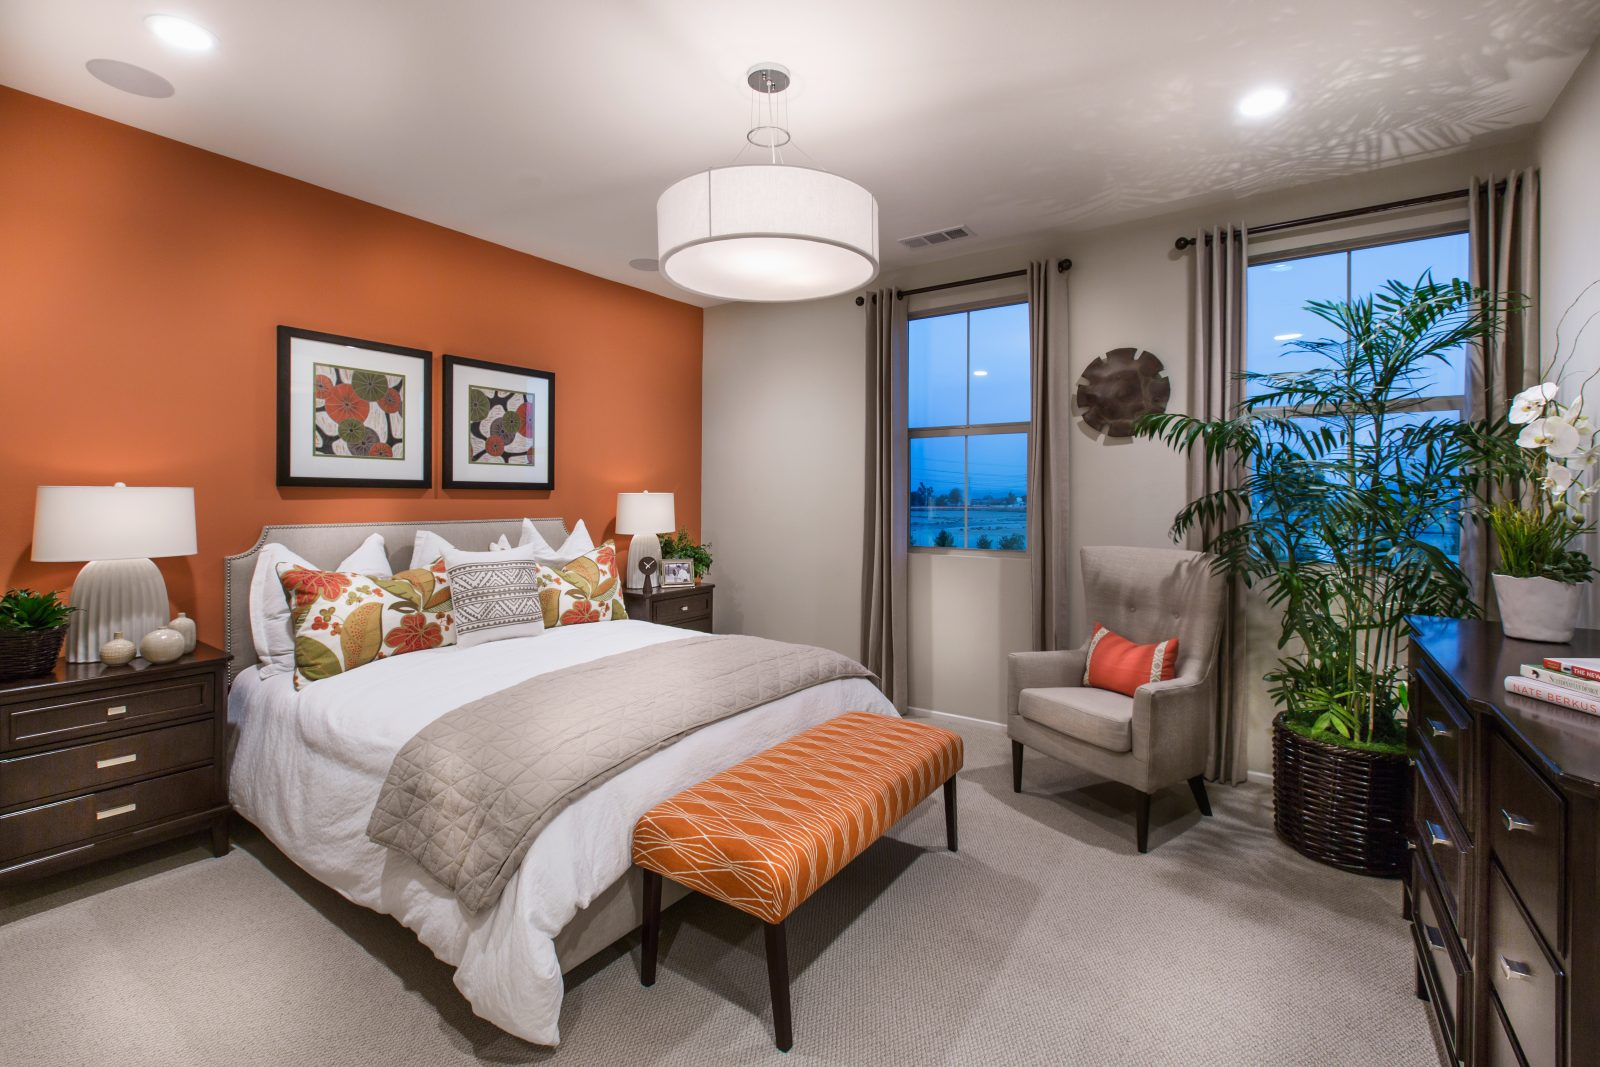 Master Bedroom | Holiday at New Haven in Ontario Ranch, CA | Brookfield Residential